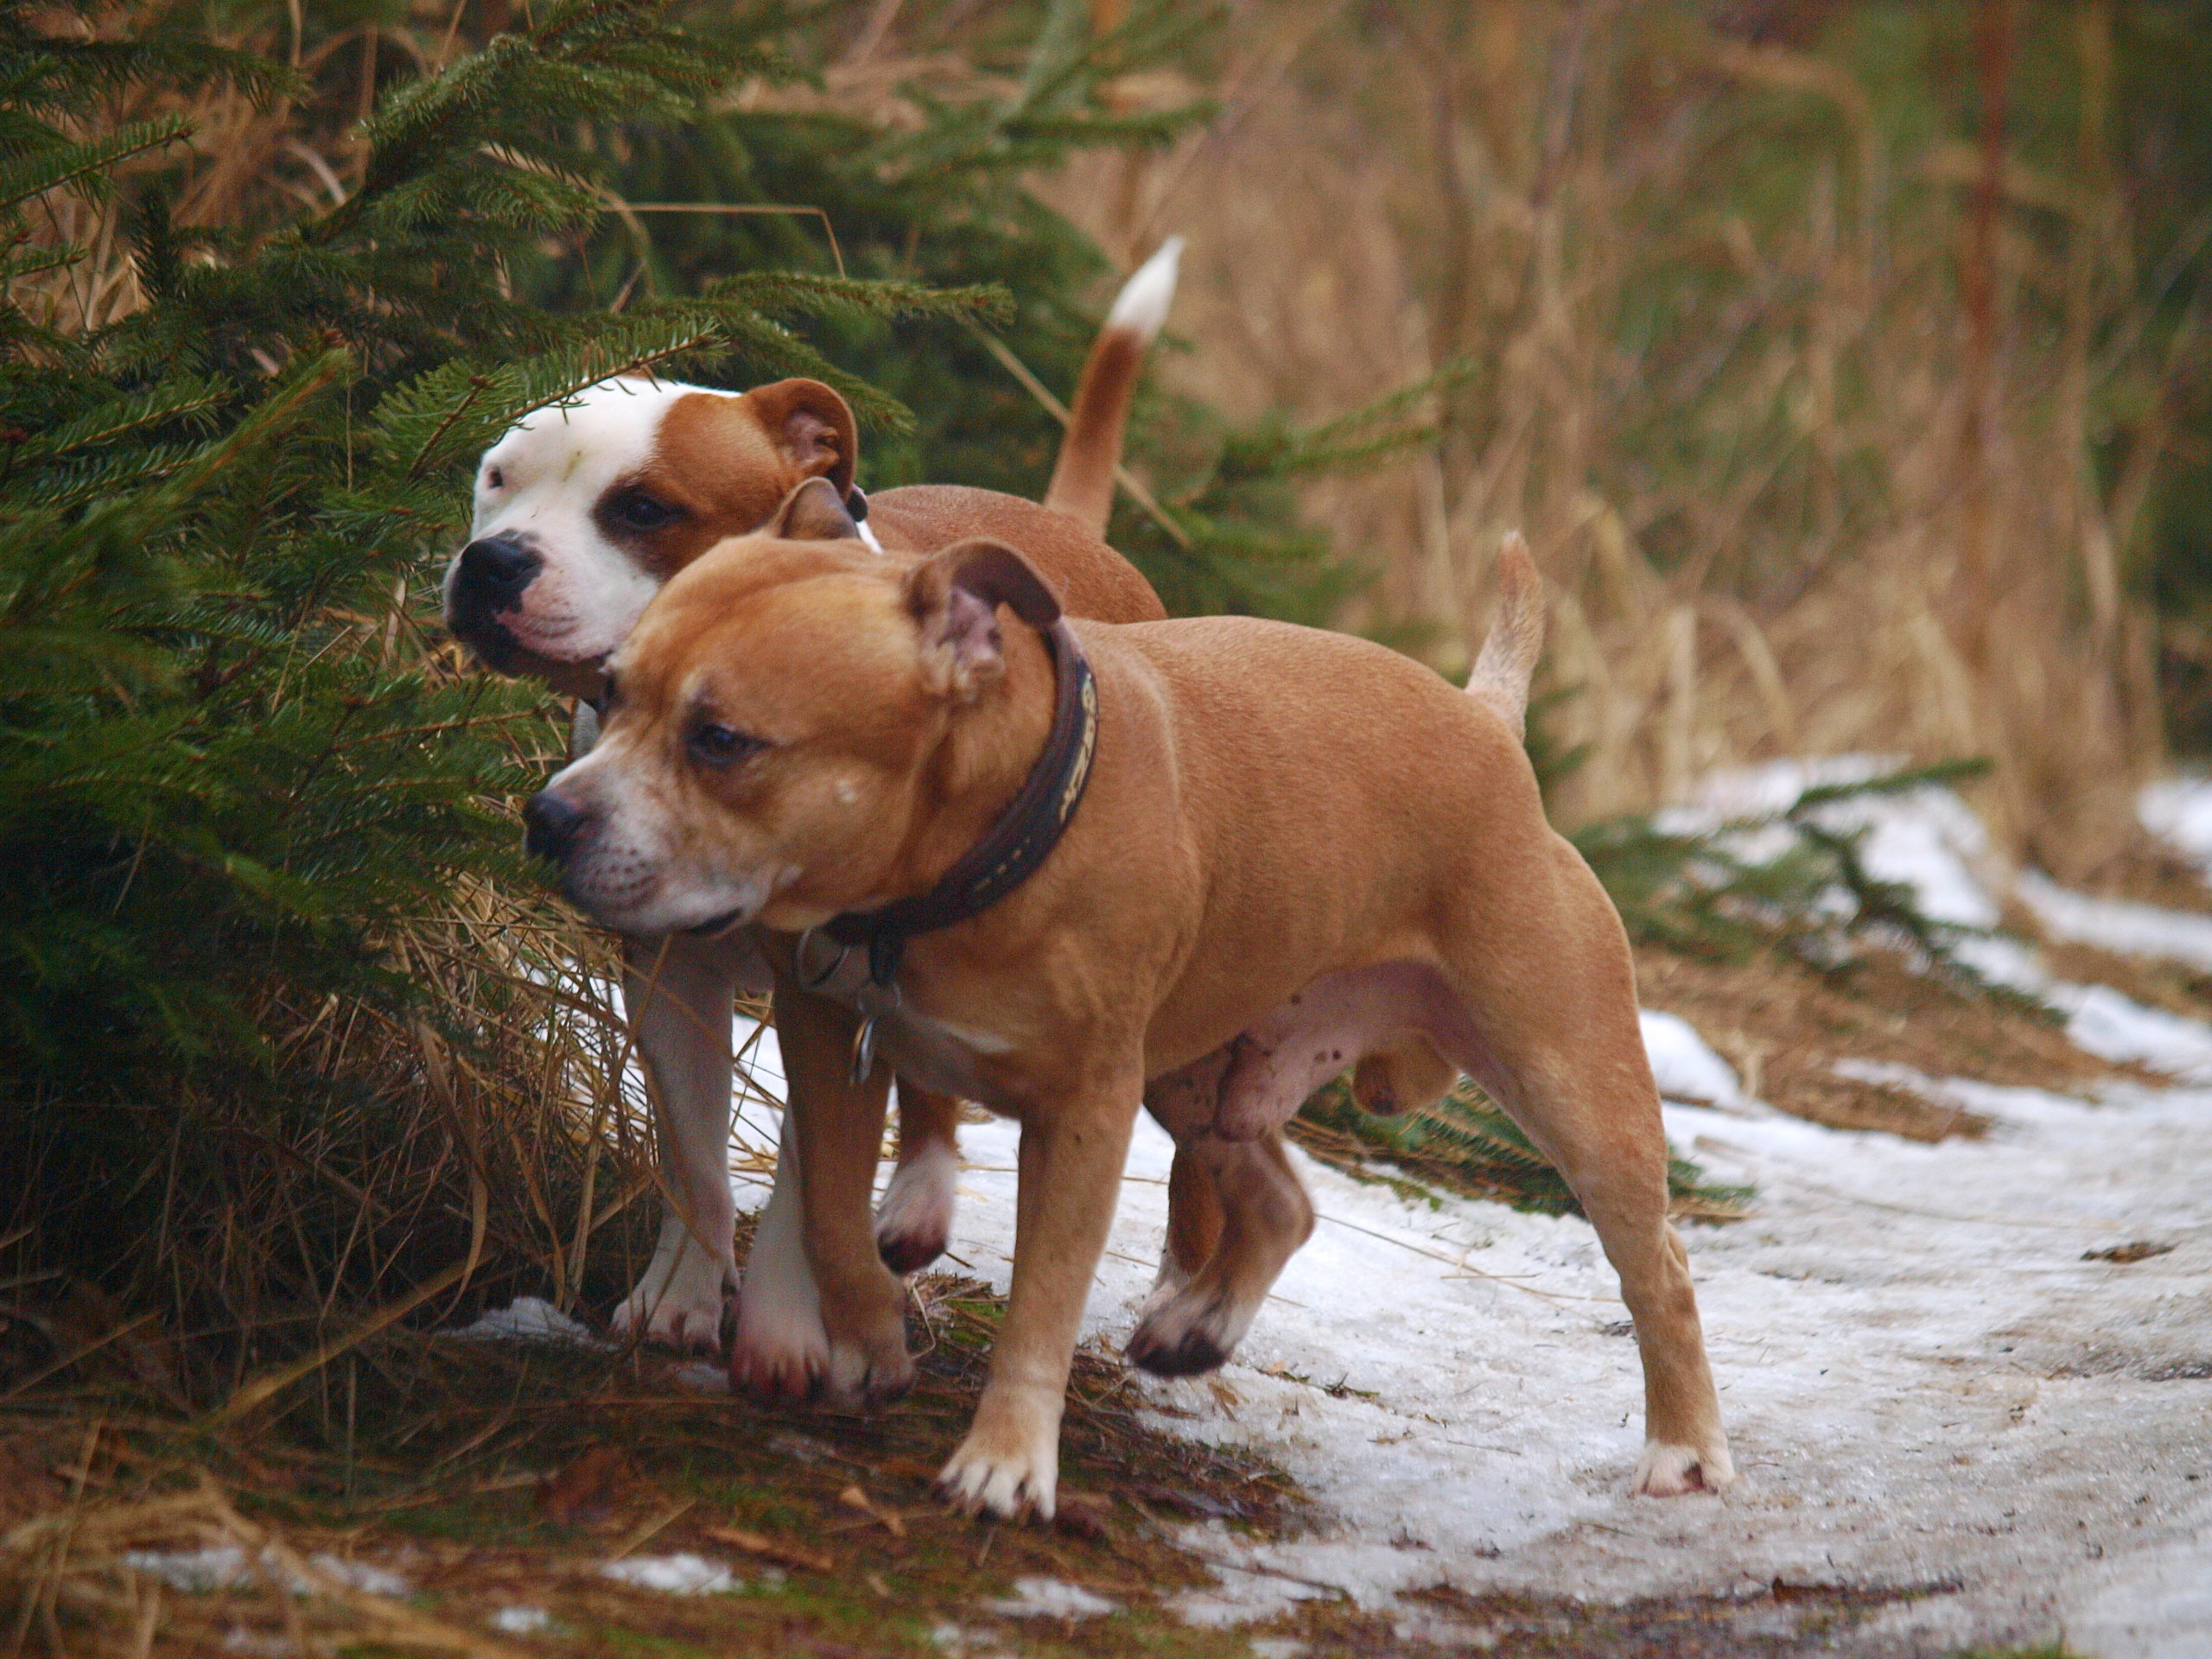 Stafforshire Bull Terrier de Orphanus